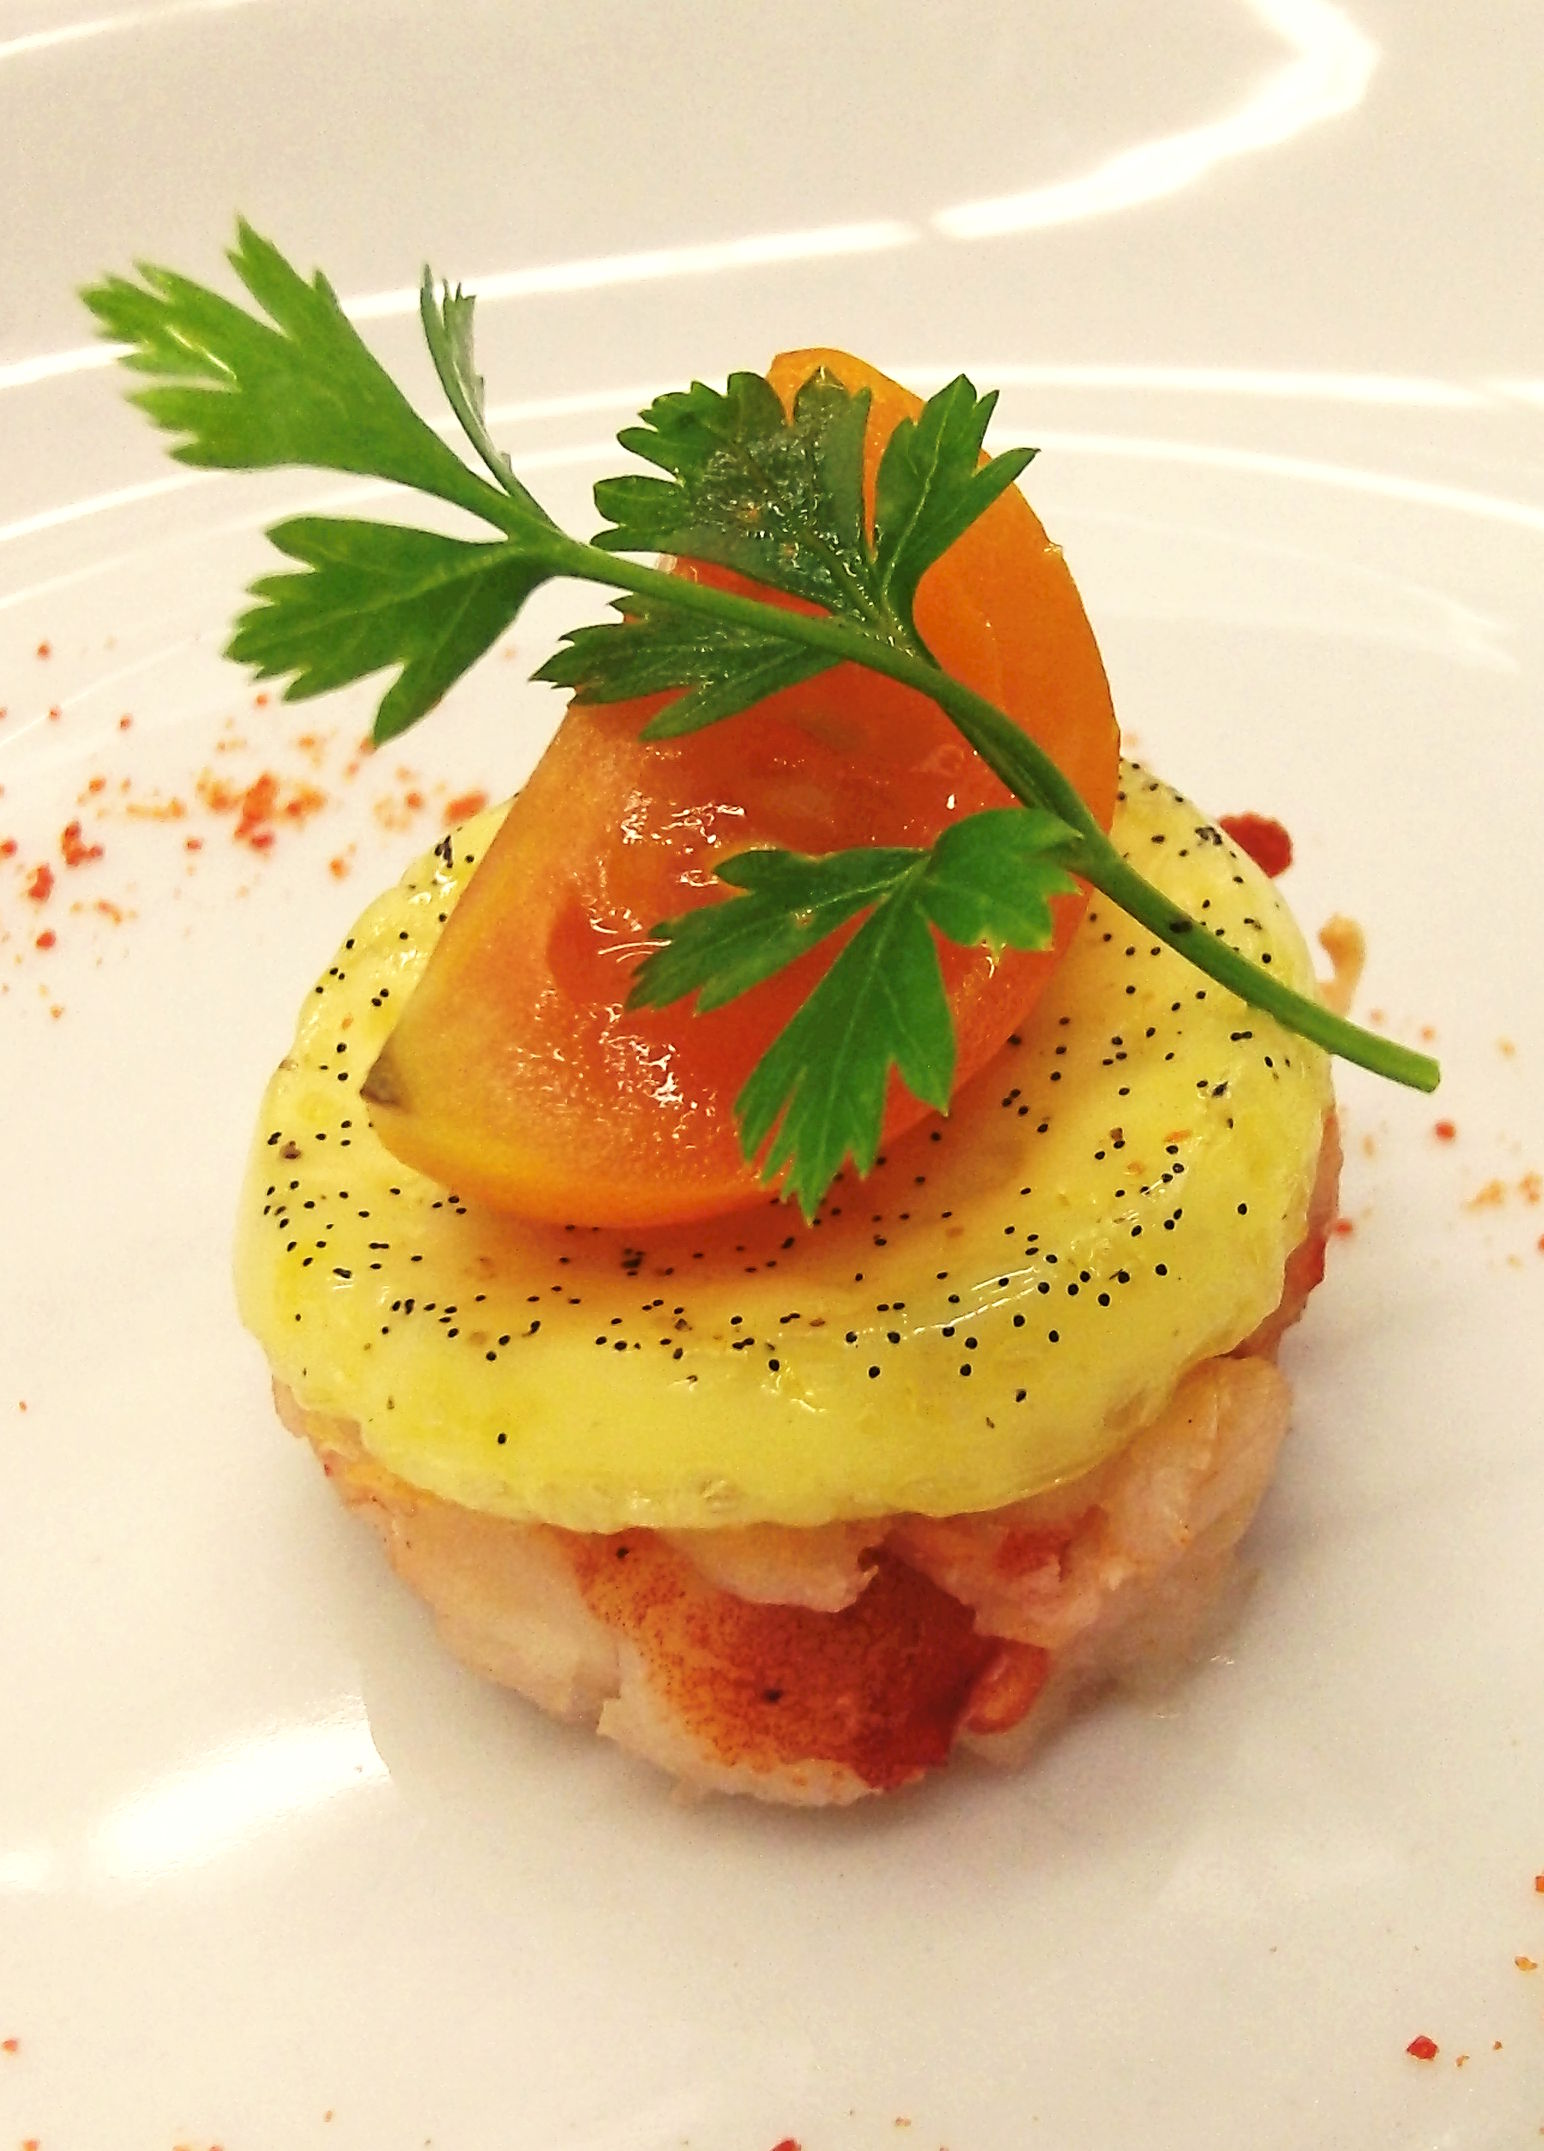 Sweet Poached Lobster Knuckle with Cardamom Vanilla Royal, Tomalley Dust, and Heirloom Cherry Tomato